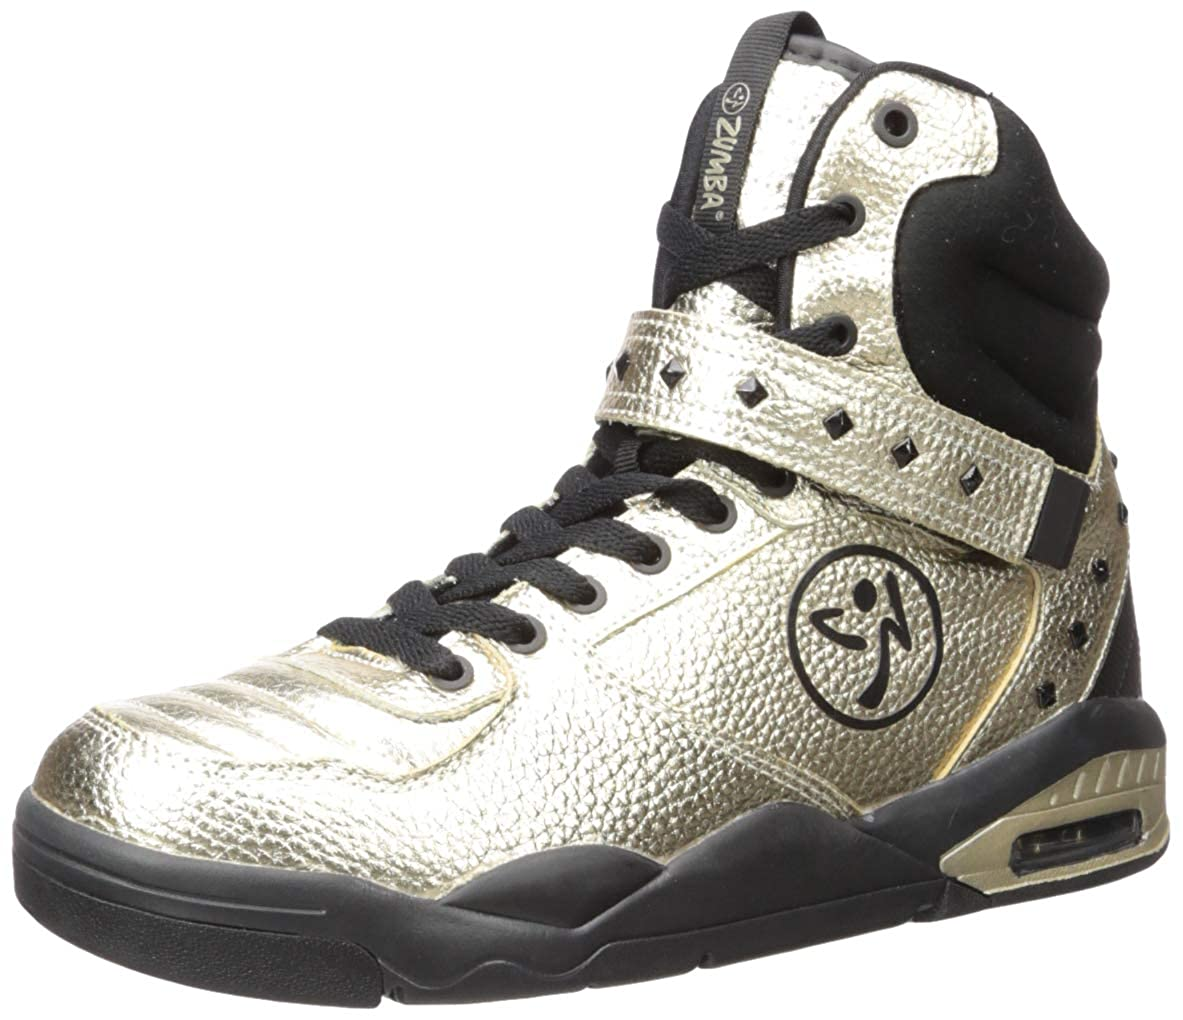 Zumba Fitness A1f00087, Chaussures de Fitness Femme Or (or 710) 40.5 EU